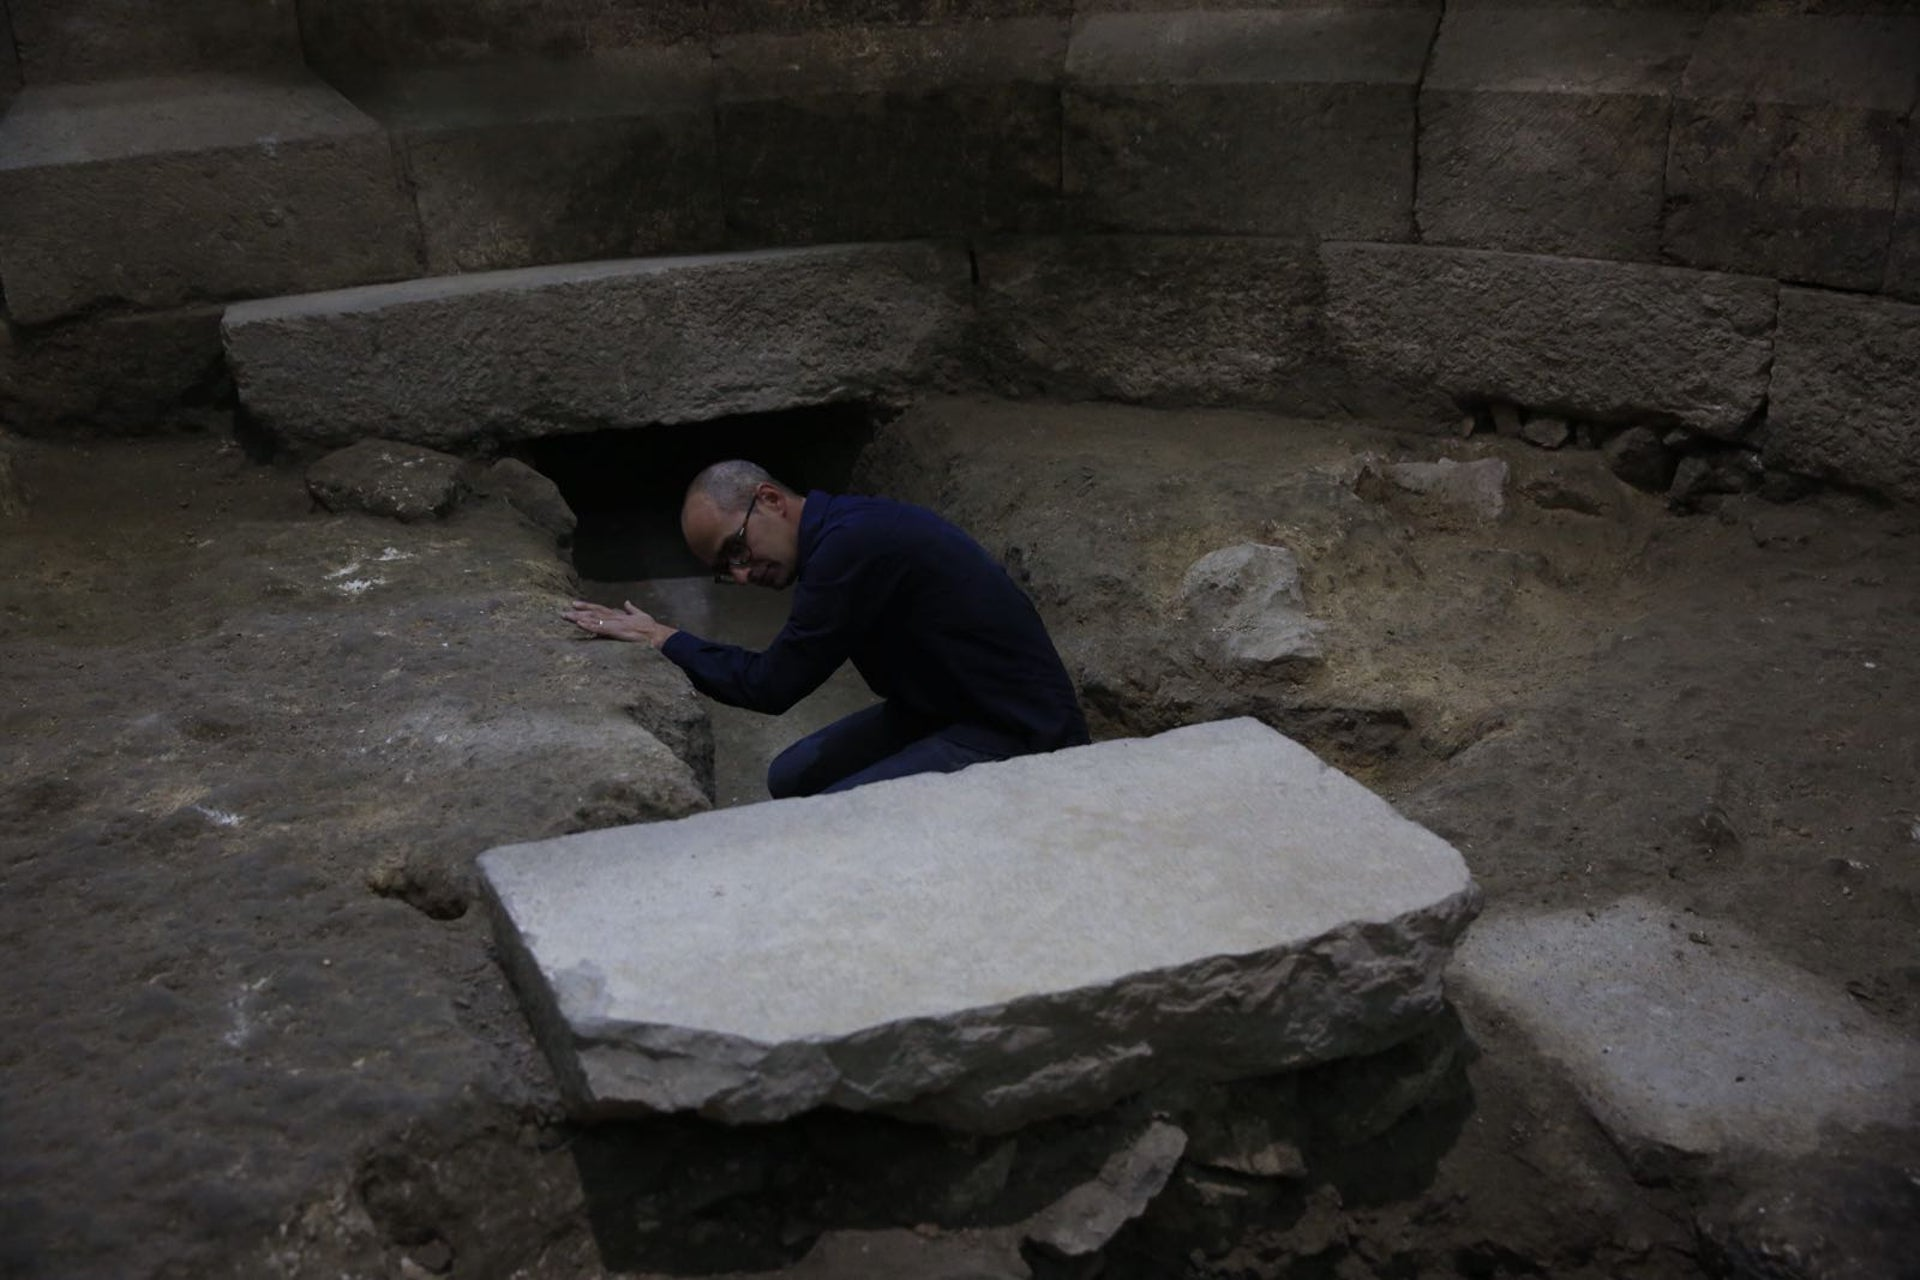 Israel's Antiquities Authority's Dr. Joe Uziel works in an ancient Roman theater in Jerusalem's old city, October 16, 2017.